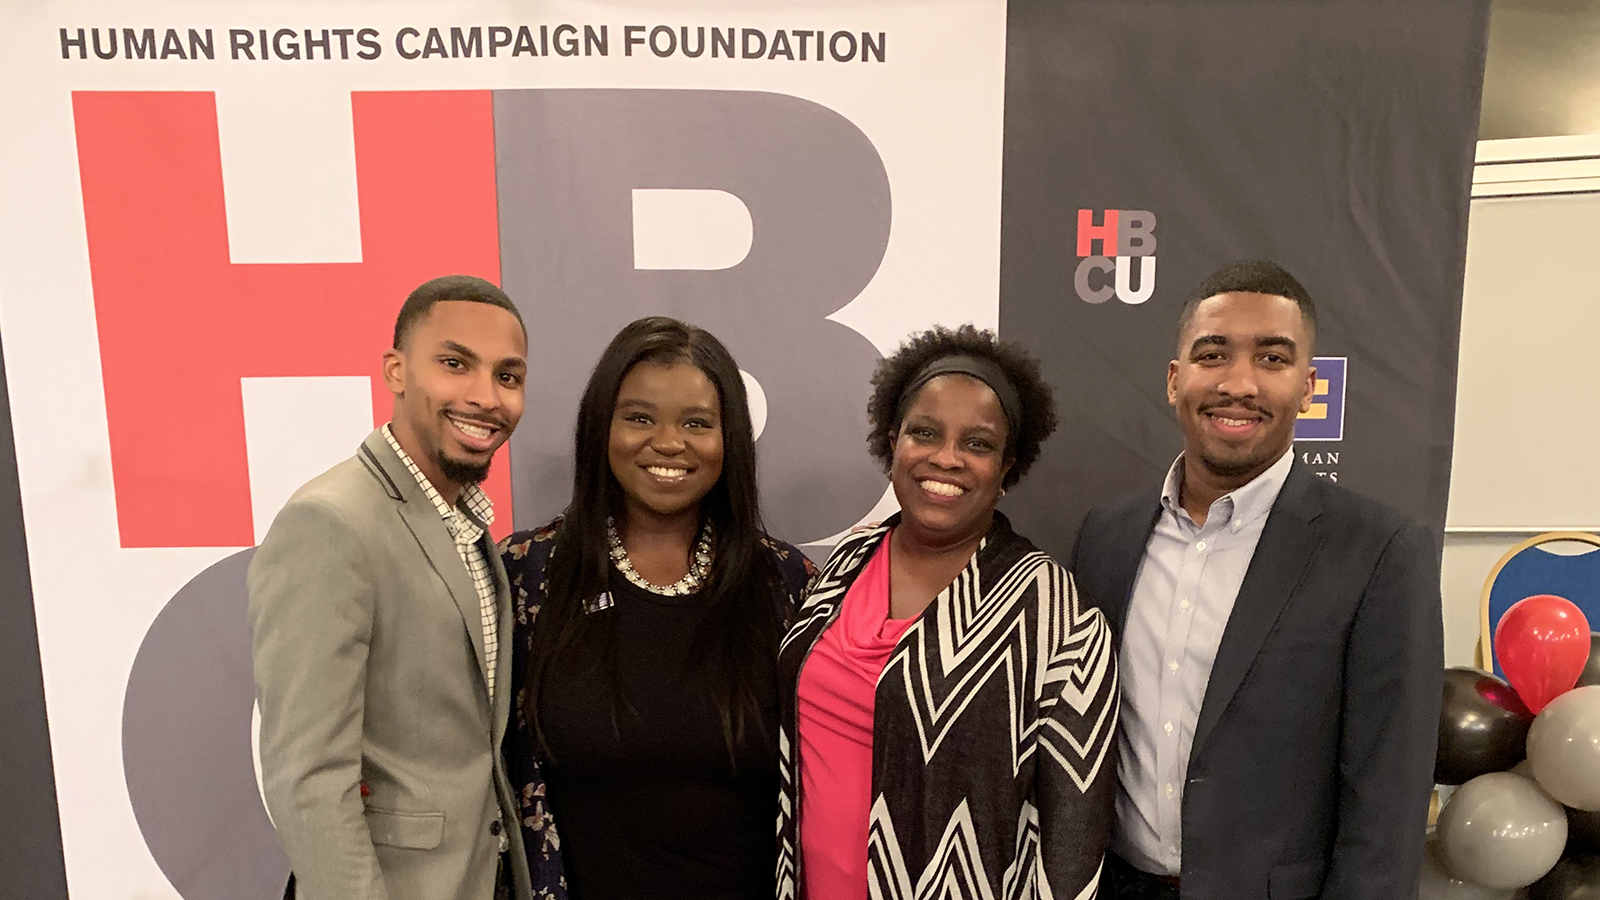 HRC Foundation Announces Historic LGBTQ Leadership Summits on HBCU Campuses